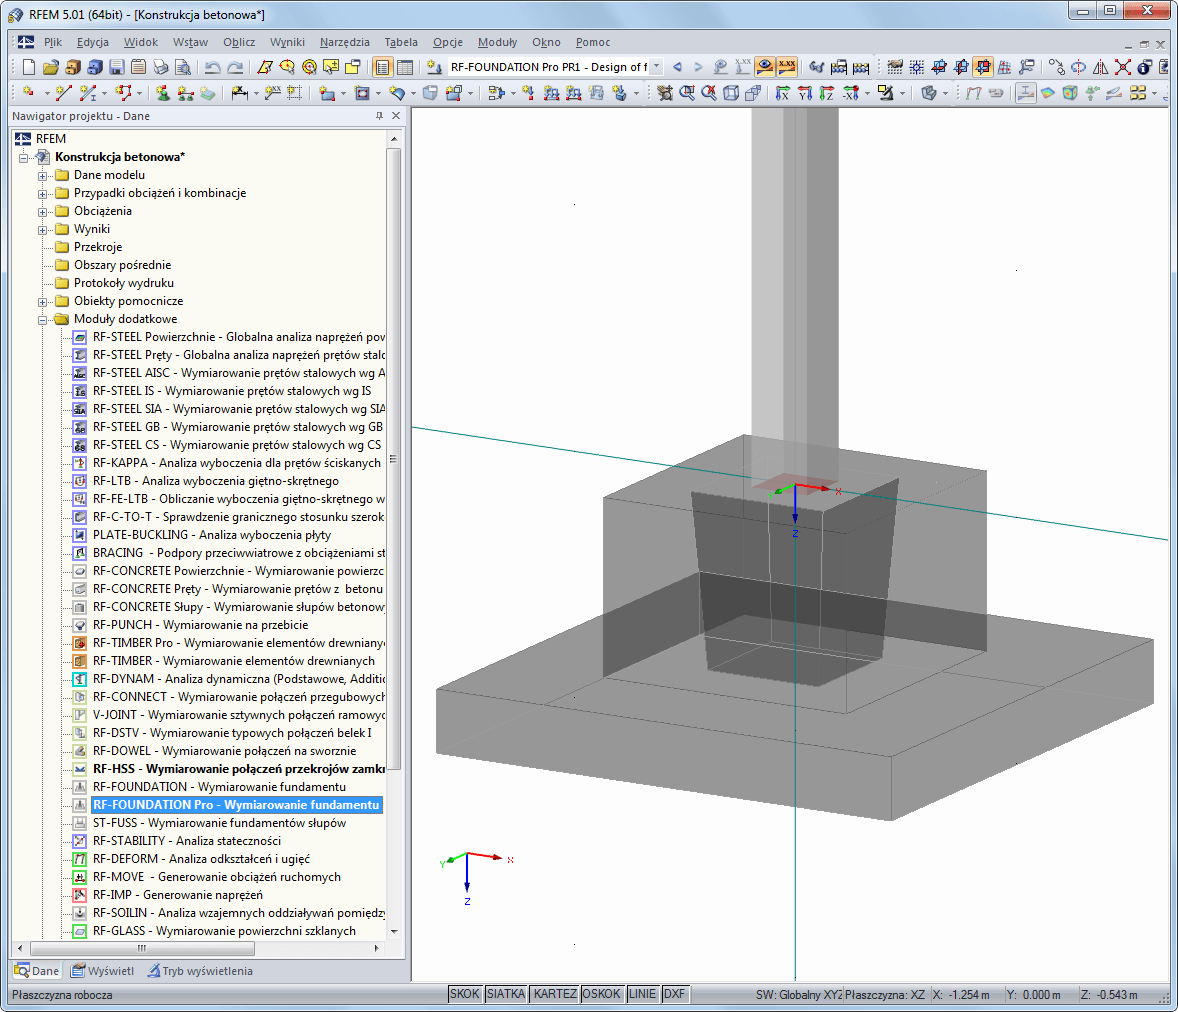 Fundament w renderingu 3D w RFEM